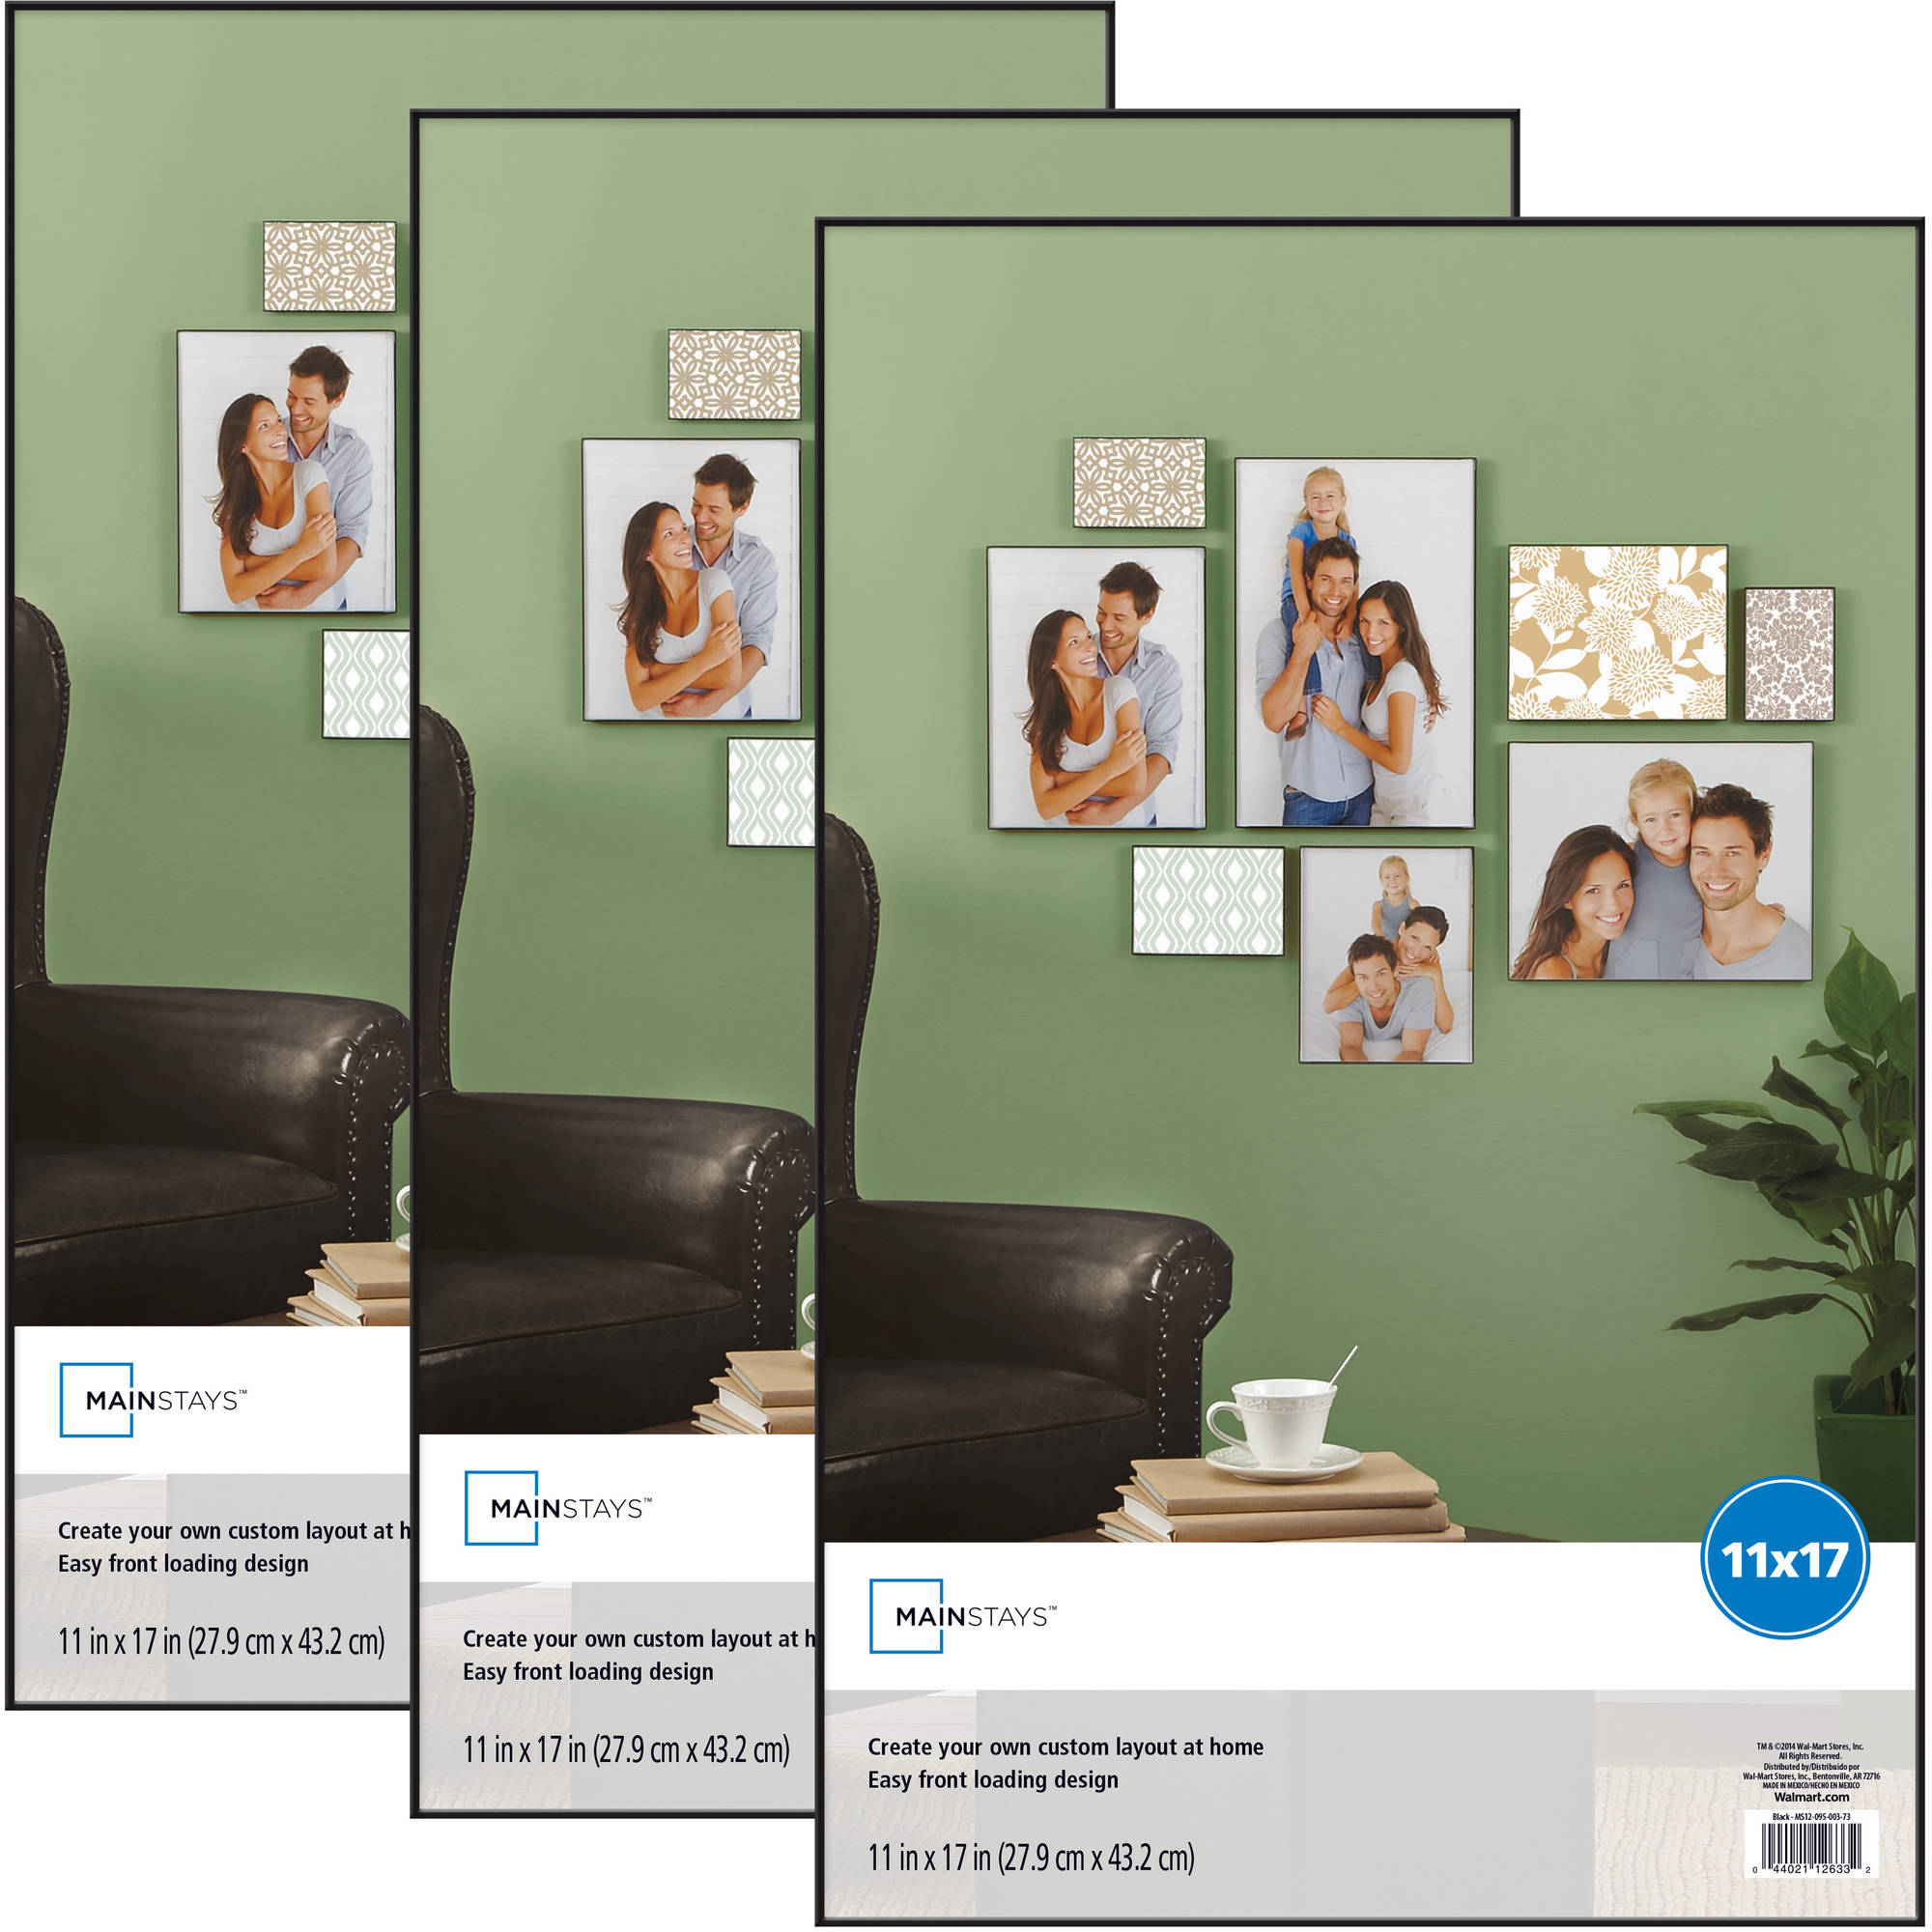 Mainstays 11x17 format picture frame set of 3 walmart jeuxipadfo Choice Image